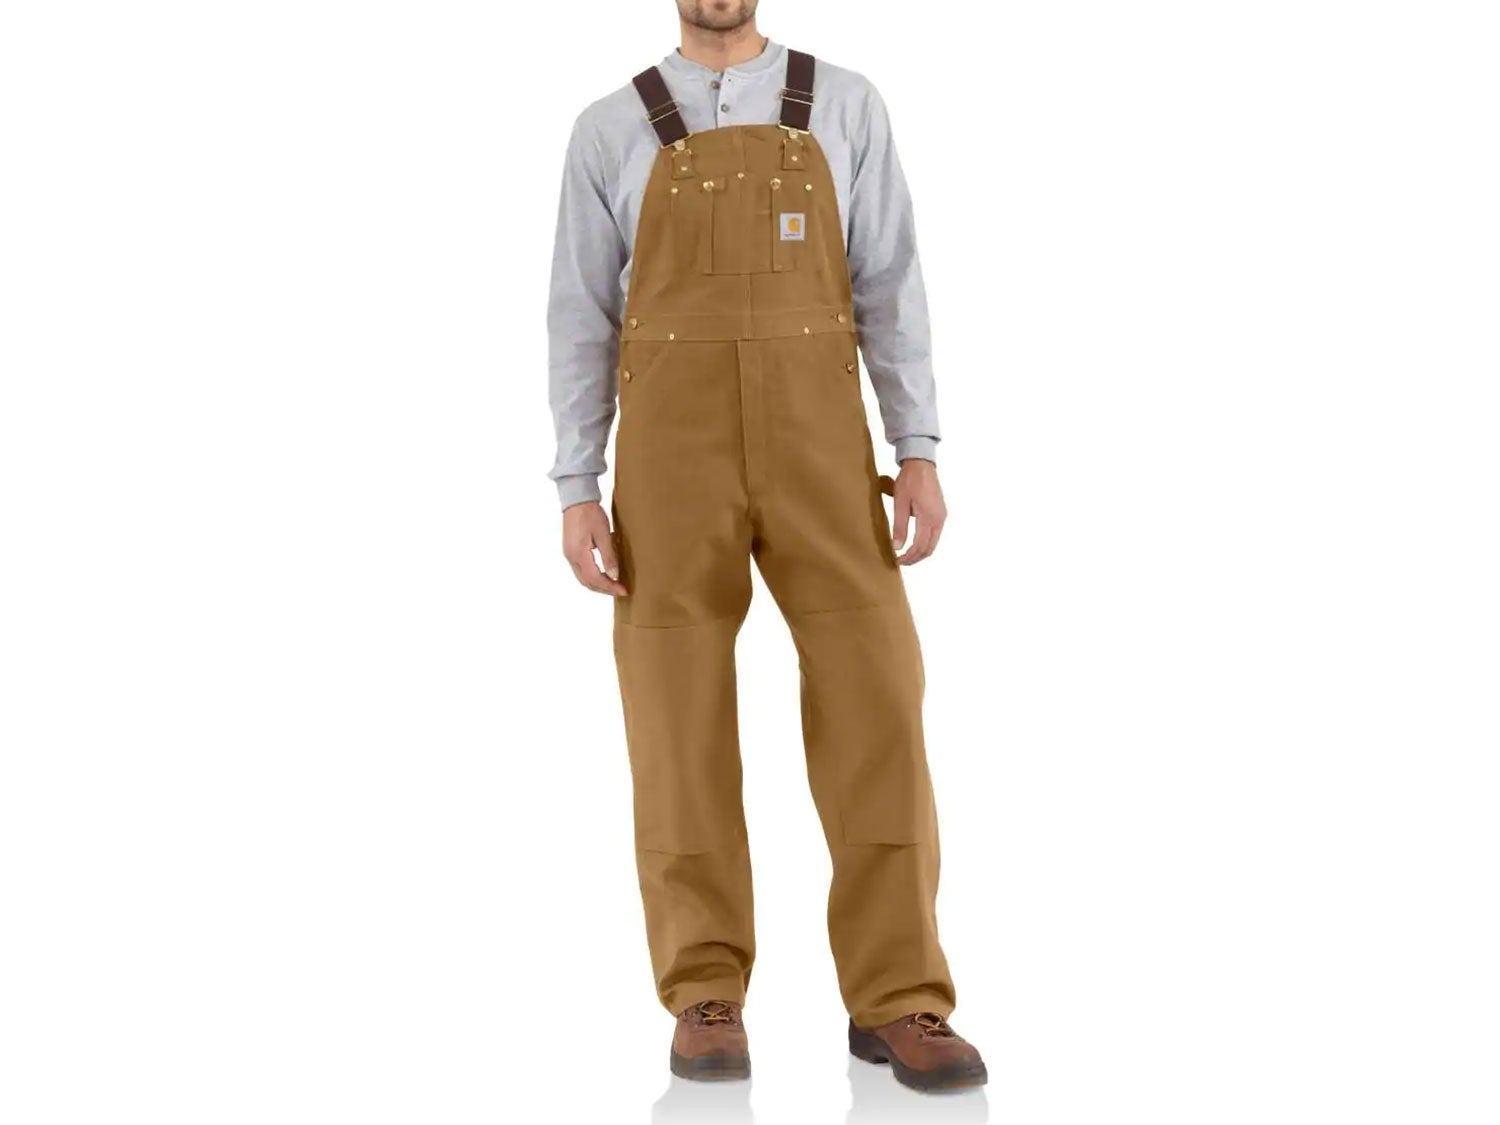 Carhartt Firm Duck Double-Front Overalls (non-quilted)